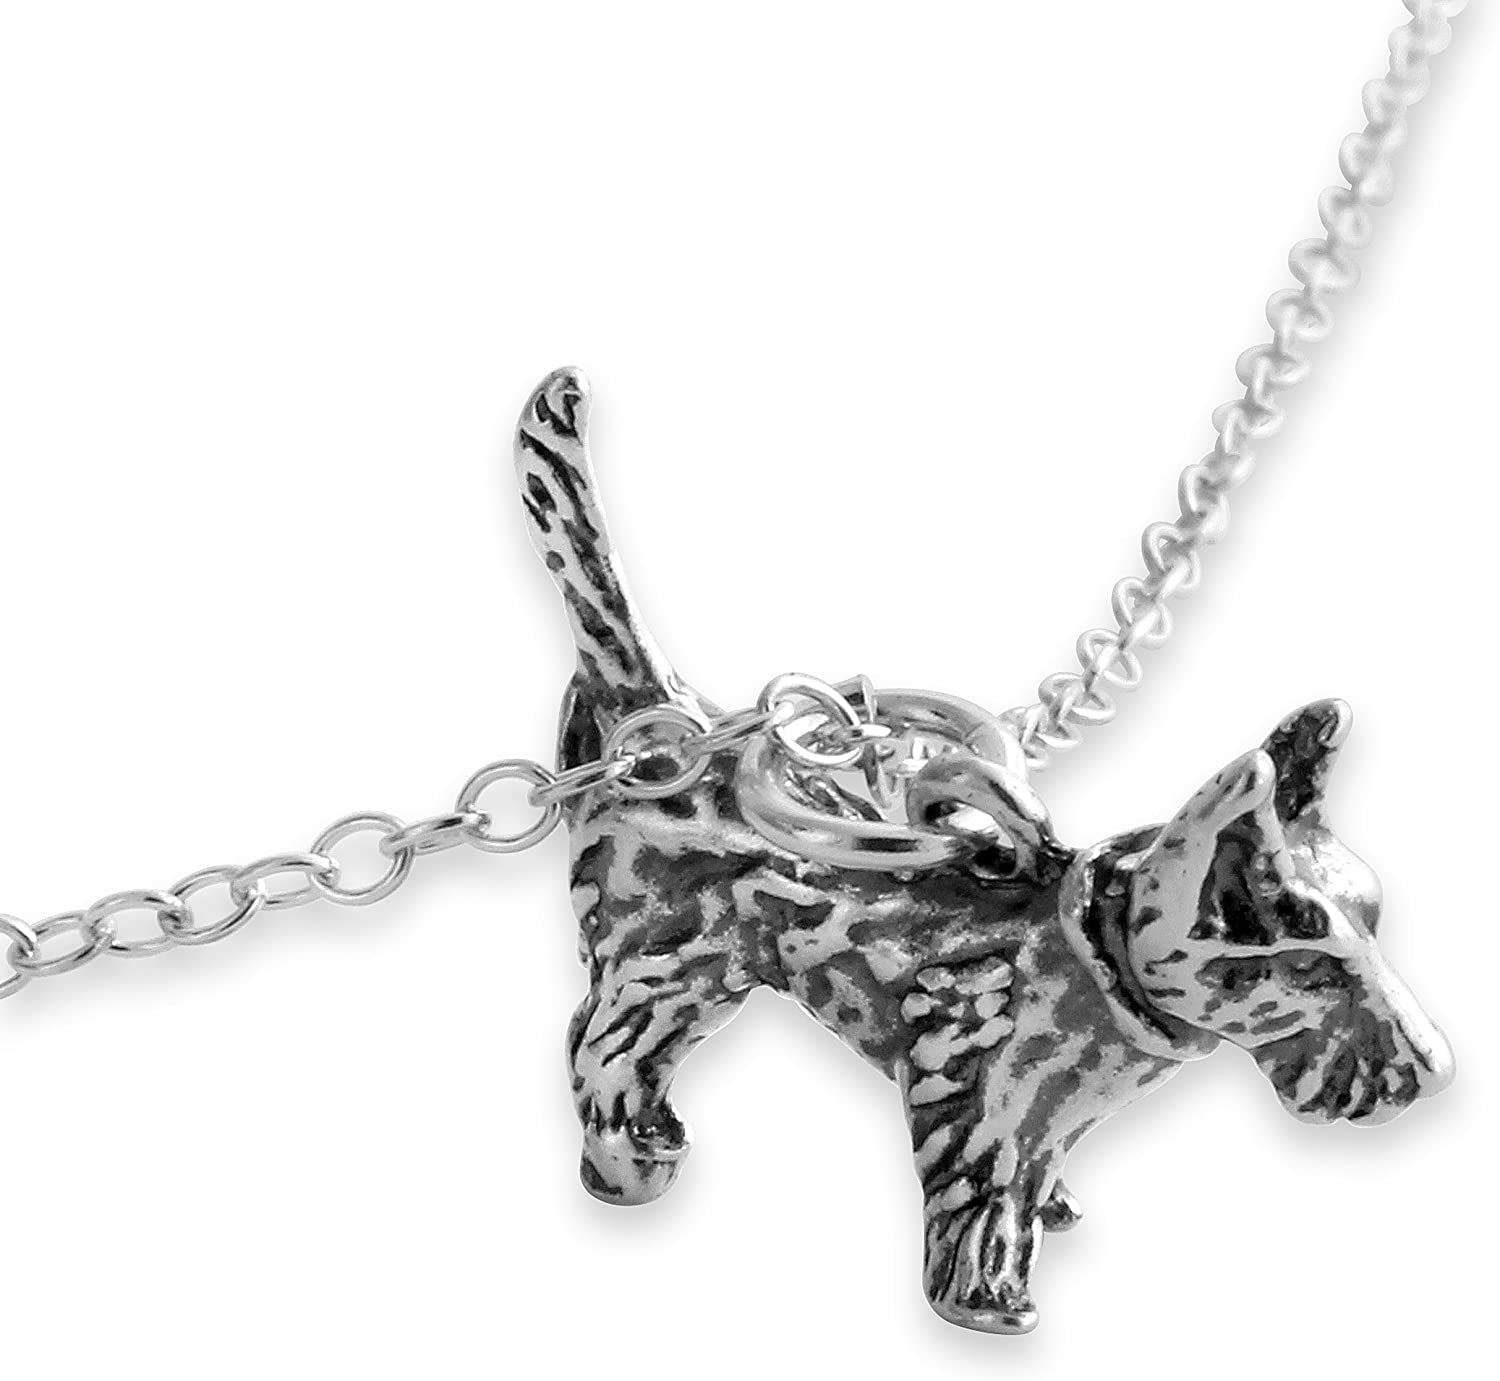 Belcho USA 925 Sterling Silver Solid Cute Terrier Dog Charm Pendant Necklace